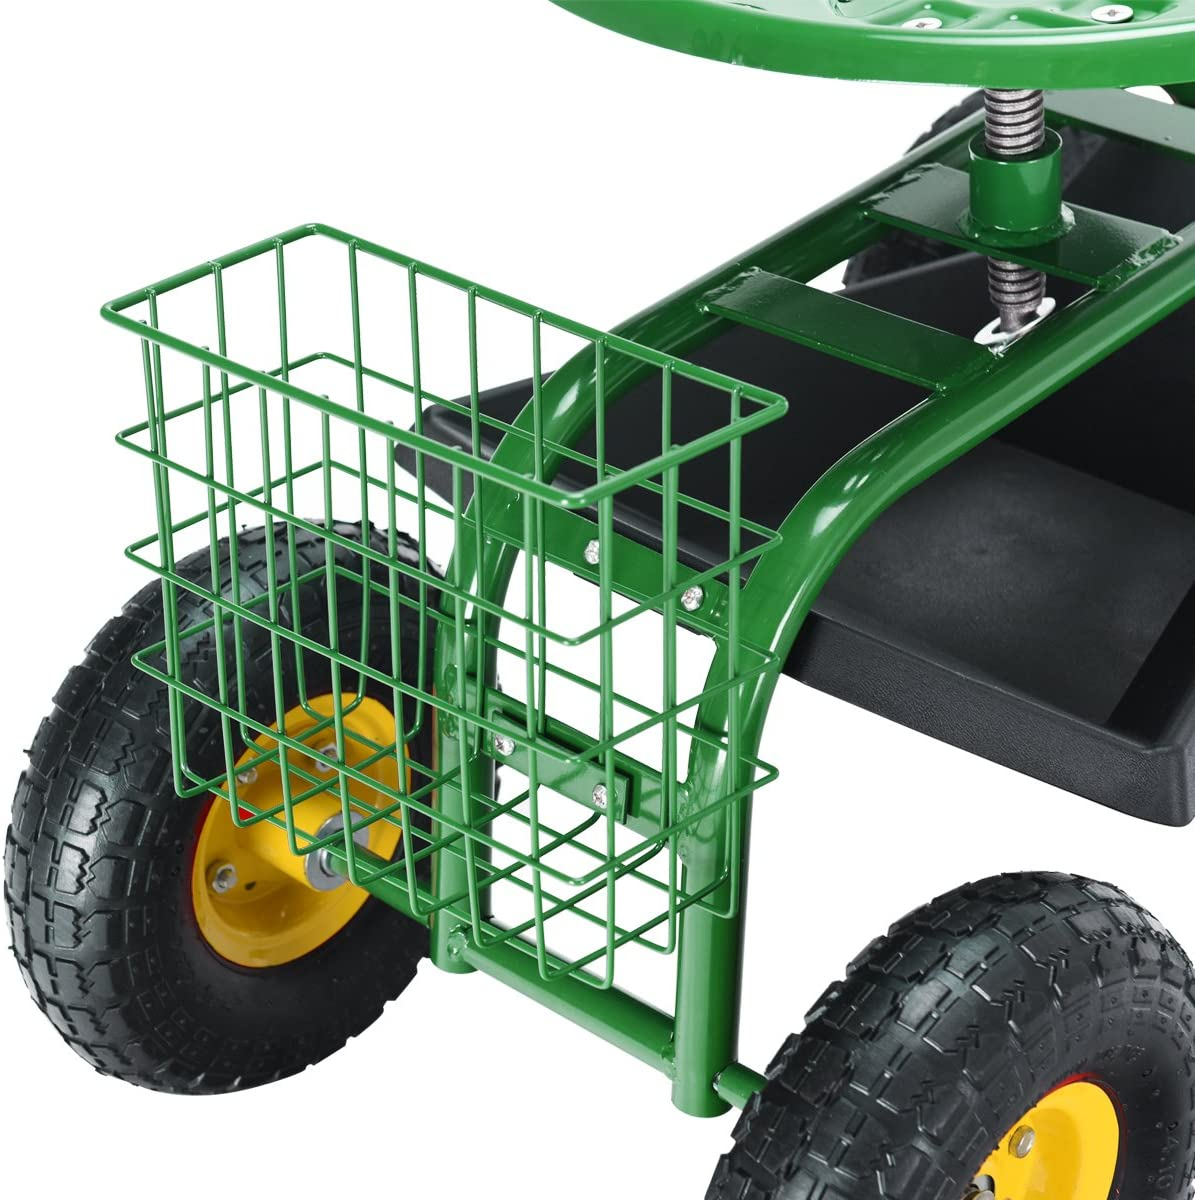 Adjustable 360 Degree Swivel Seat w//Tool Tray Green Goplus Garden Cart Rolling Work Seat Outdoor Lawn Yard Patio Wagon Scooter for Planting Basket